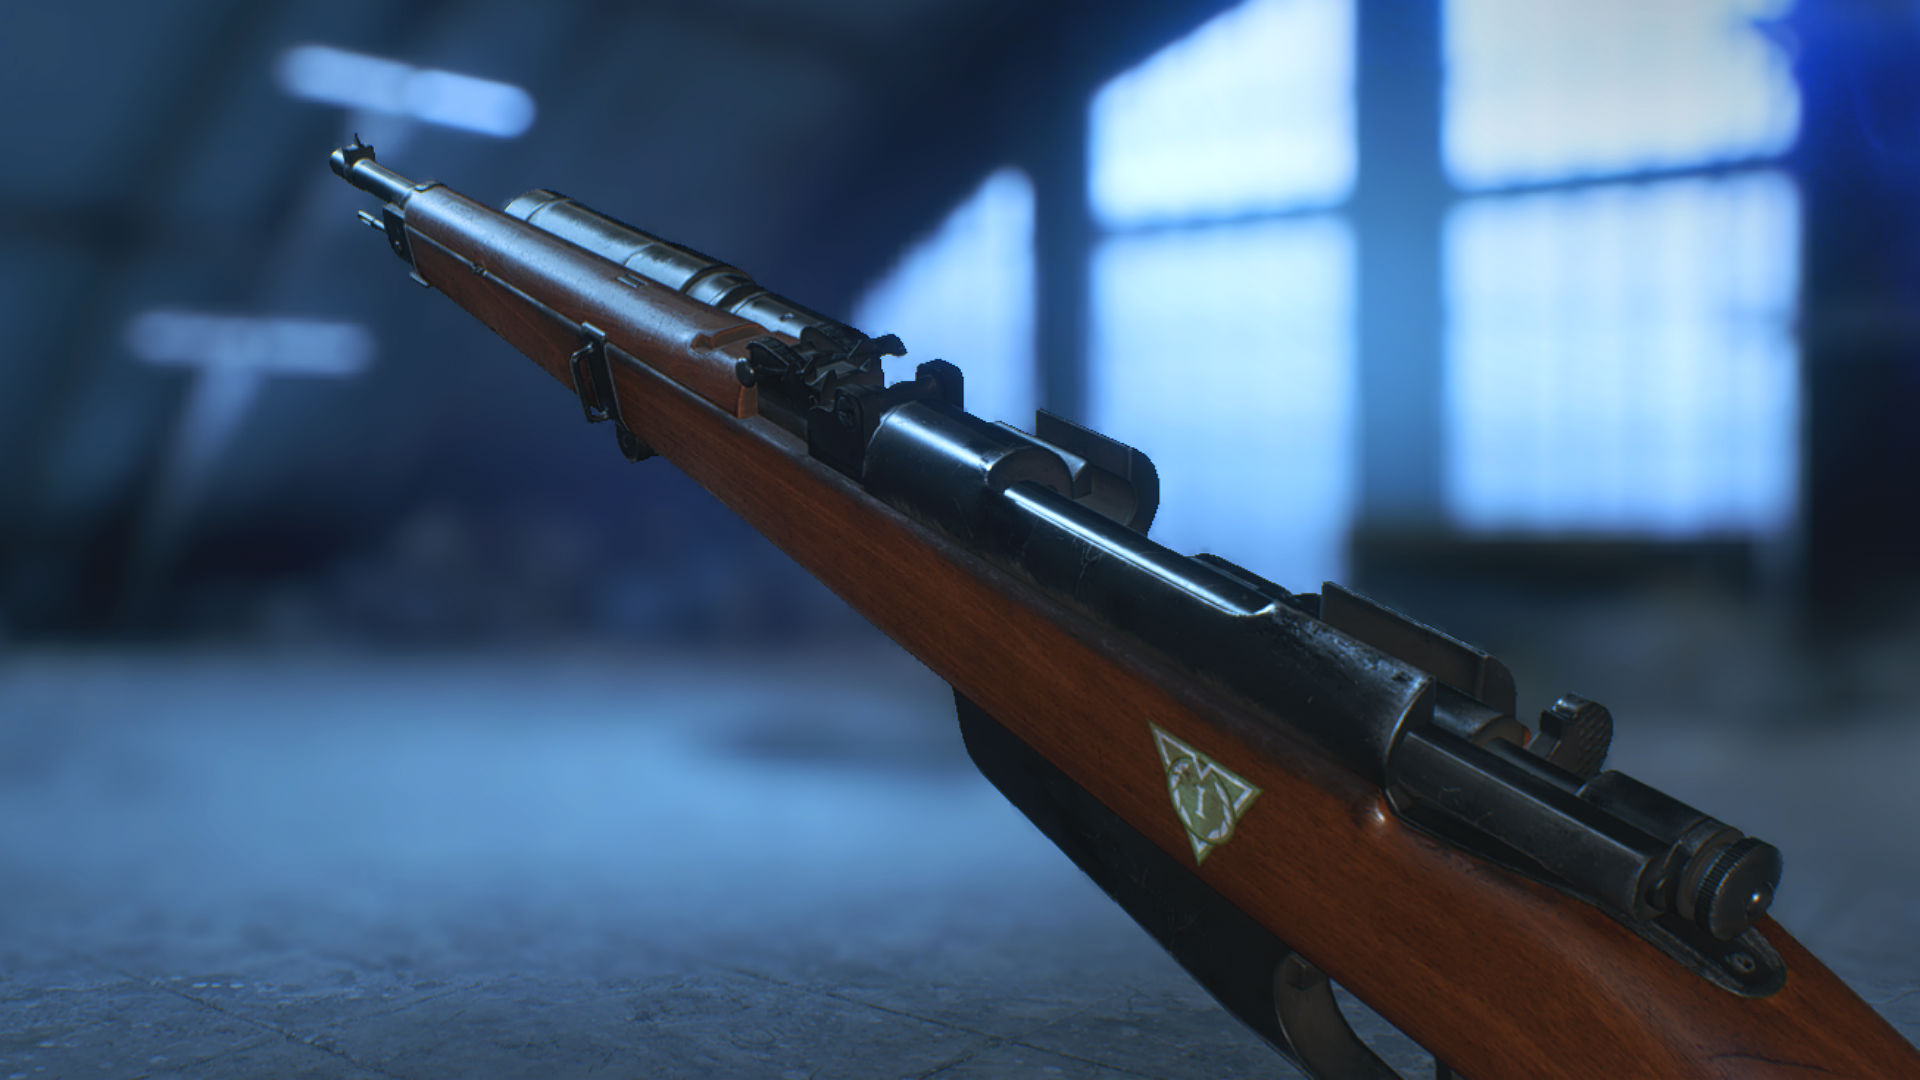 Battlefield 5 M91/28 Tromboncino: how to get the bolt-action carbine with a grenade launcher